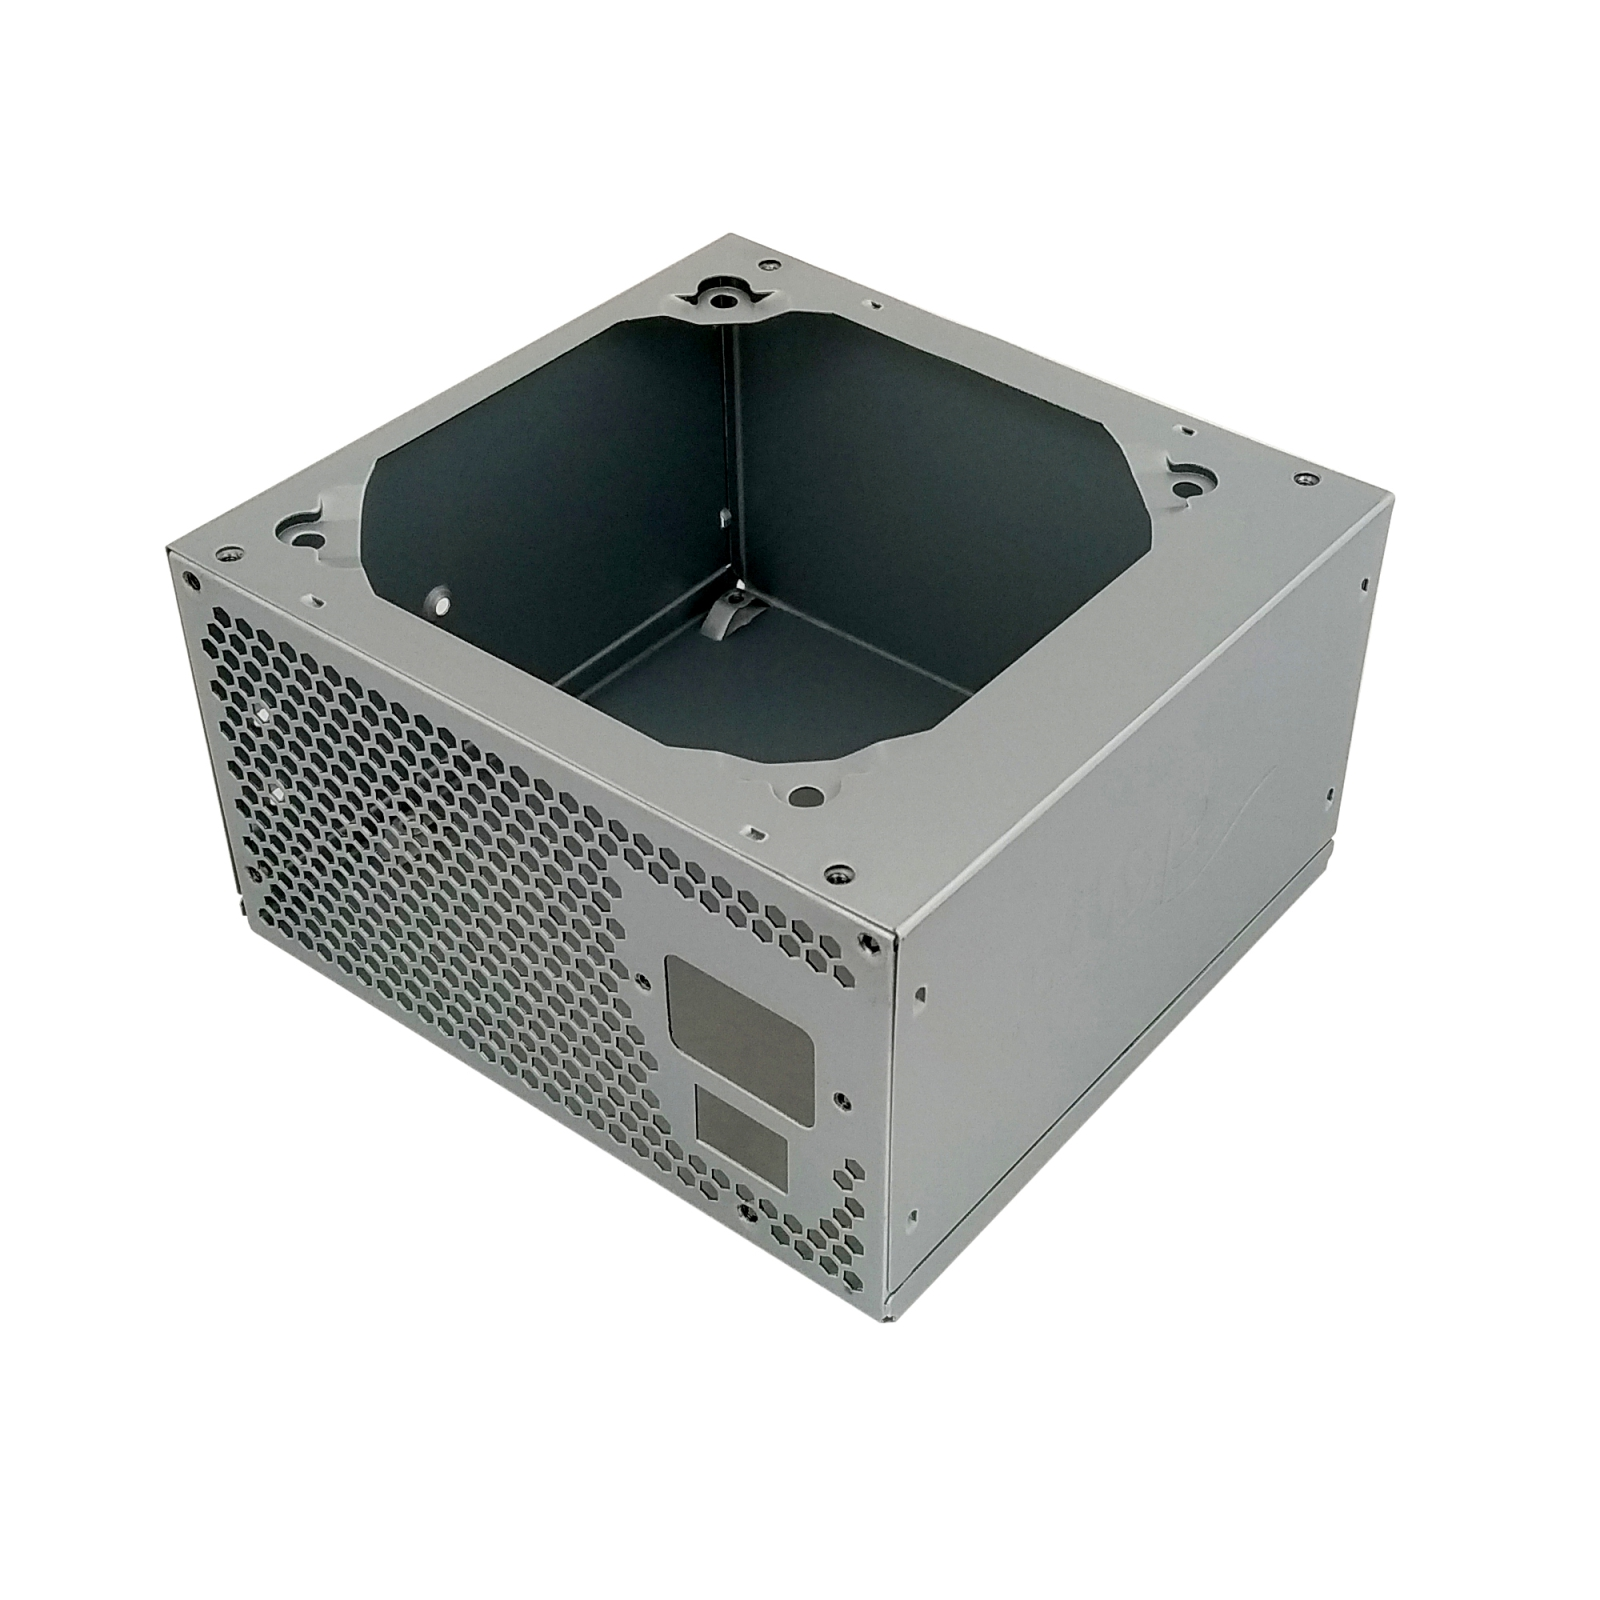 Main image ATX power supply case 150 x 140 x 85 mm AK-SC-30